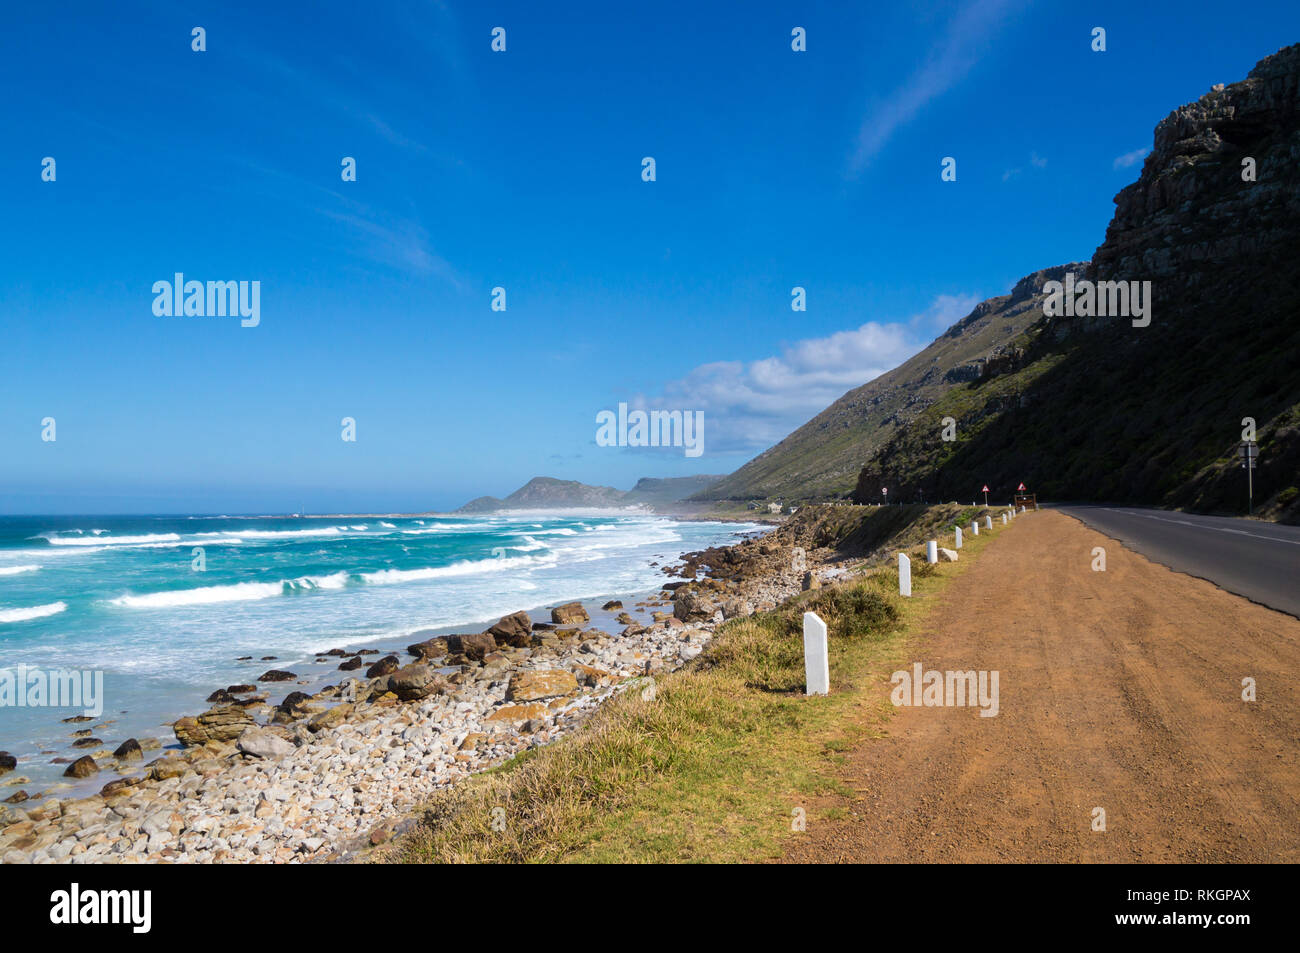 Scenic coastline at the Garden Route, Cape Province, South Africa. Stock Photo